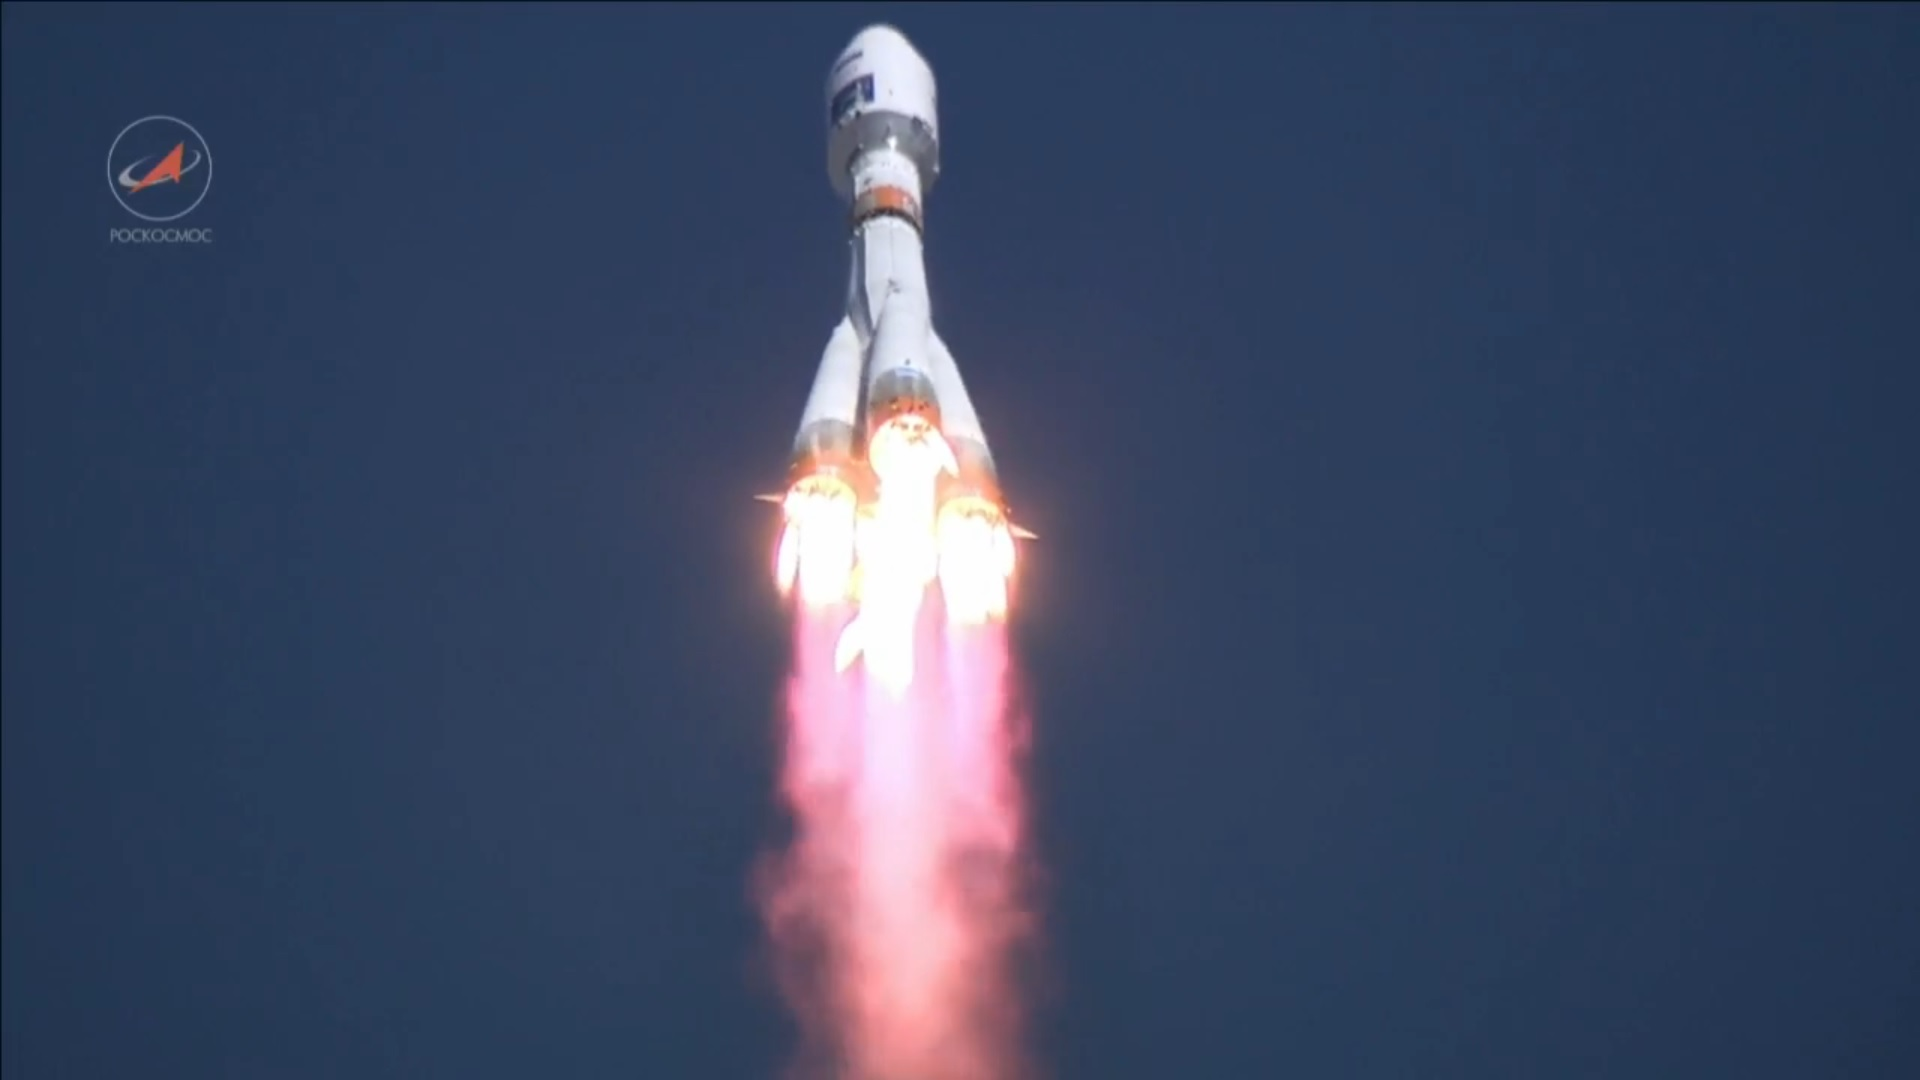 first soyuz rocket blasts off from new siberian launch